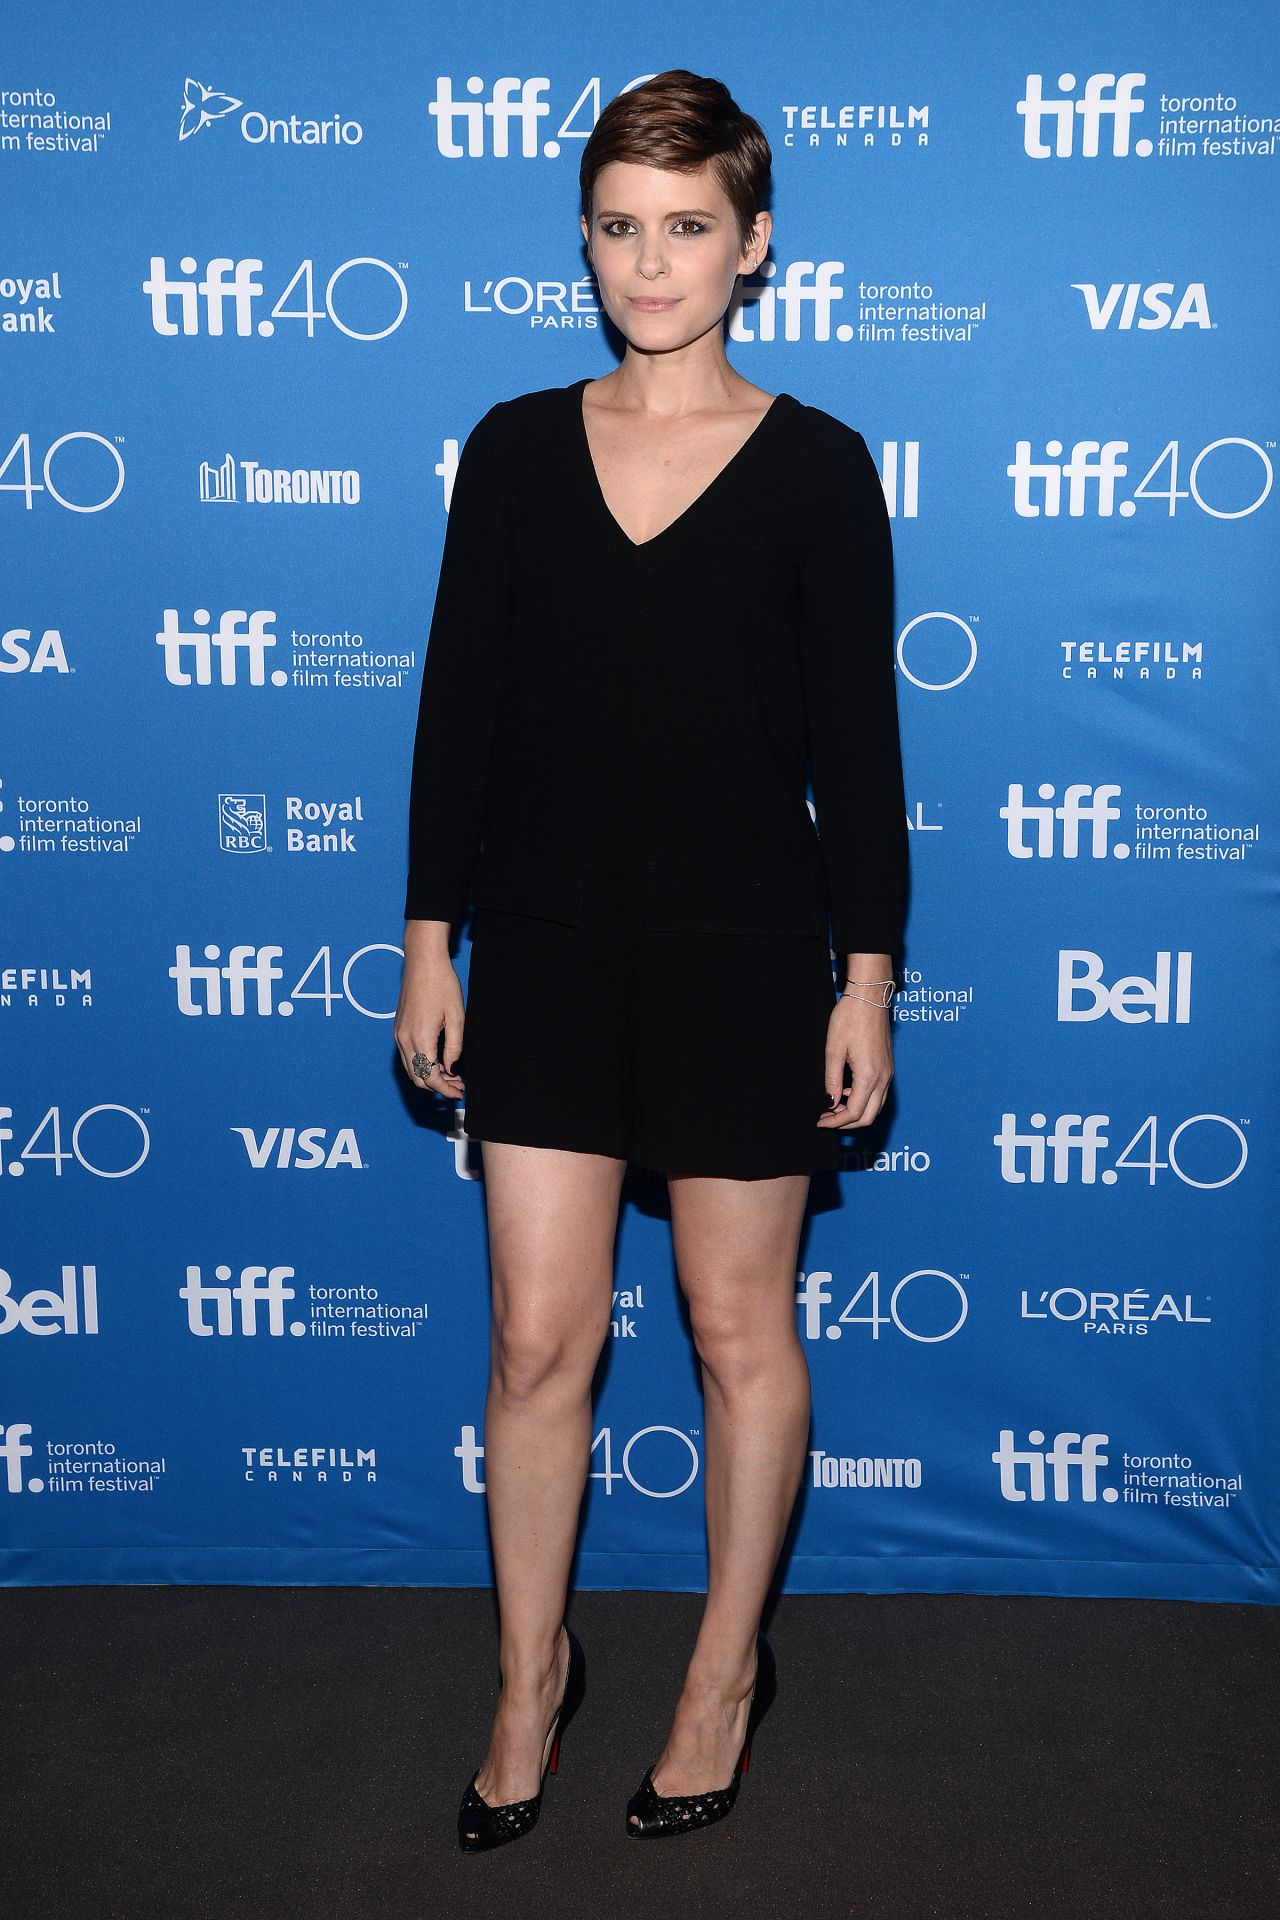 kate-mara-man-down-press-conference-at-2015-toronto-international-film-festival_9